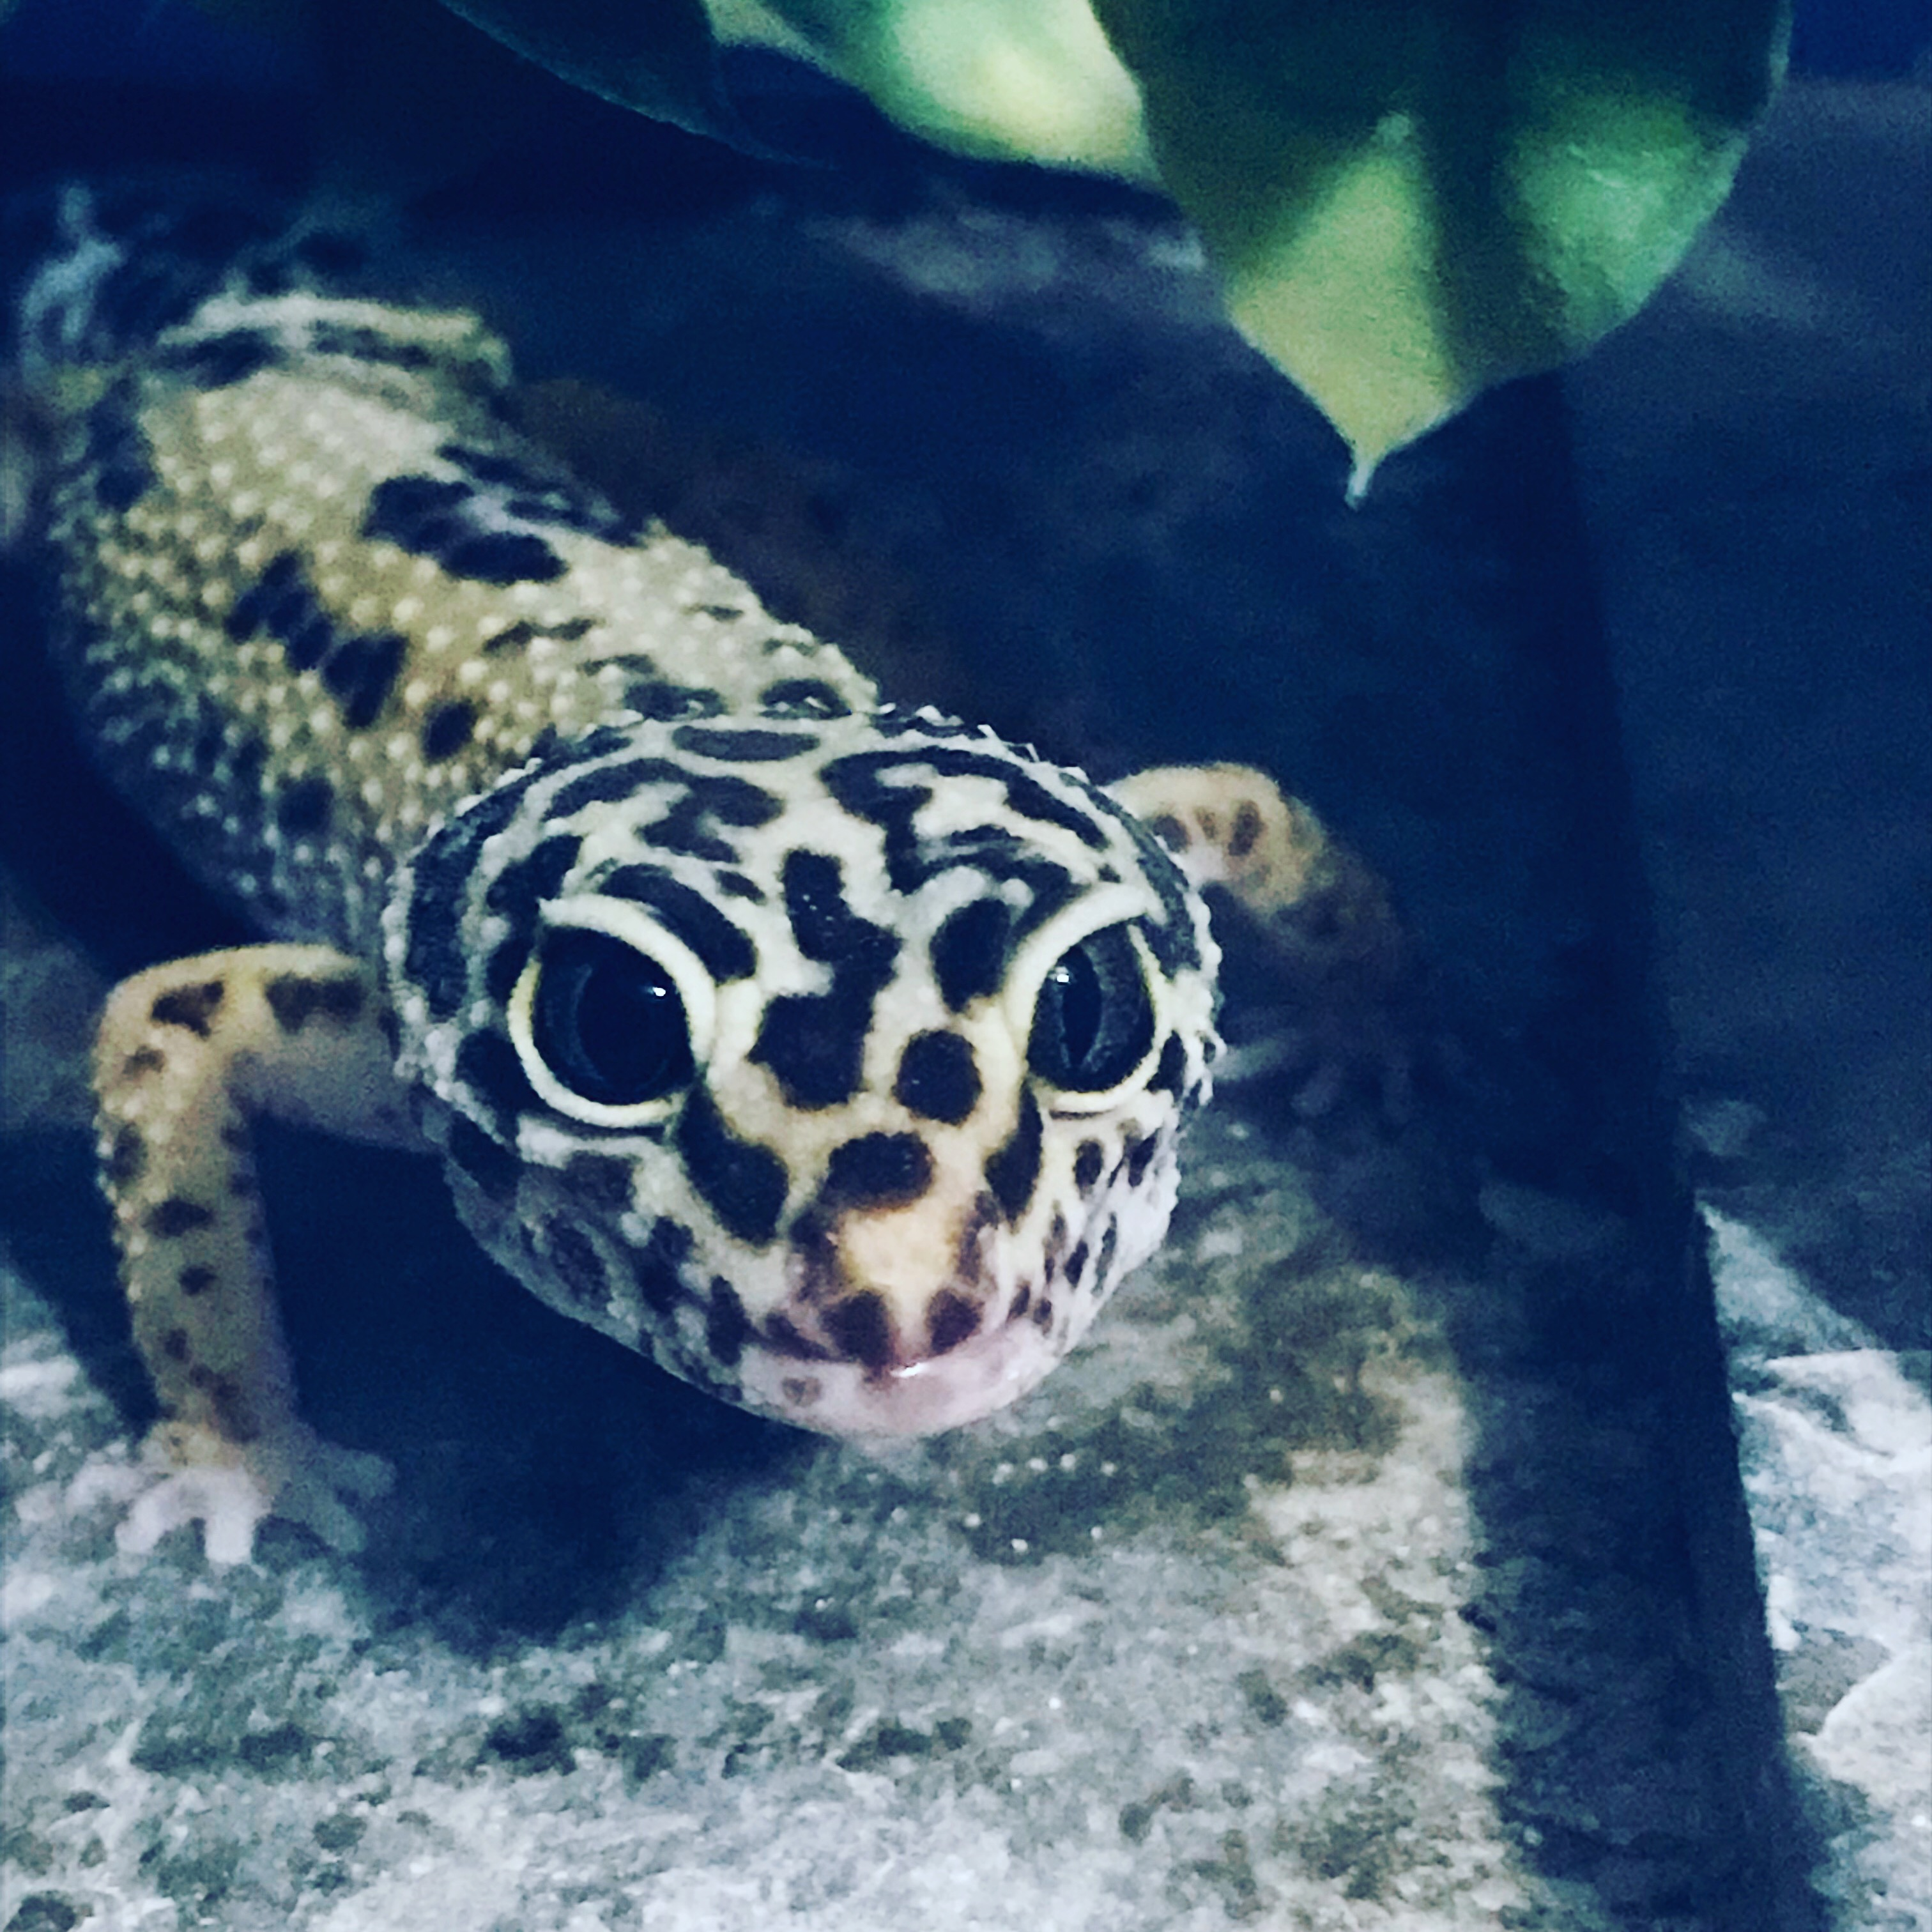 Kaemon the Leopard Gecko